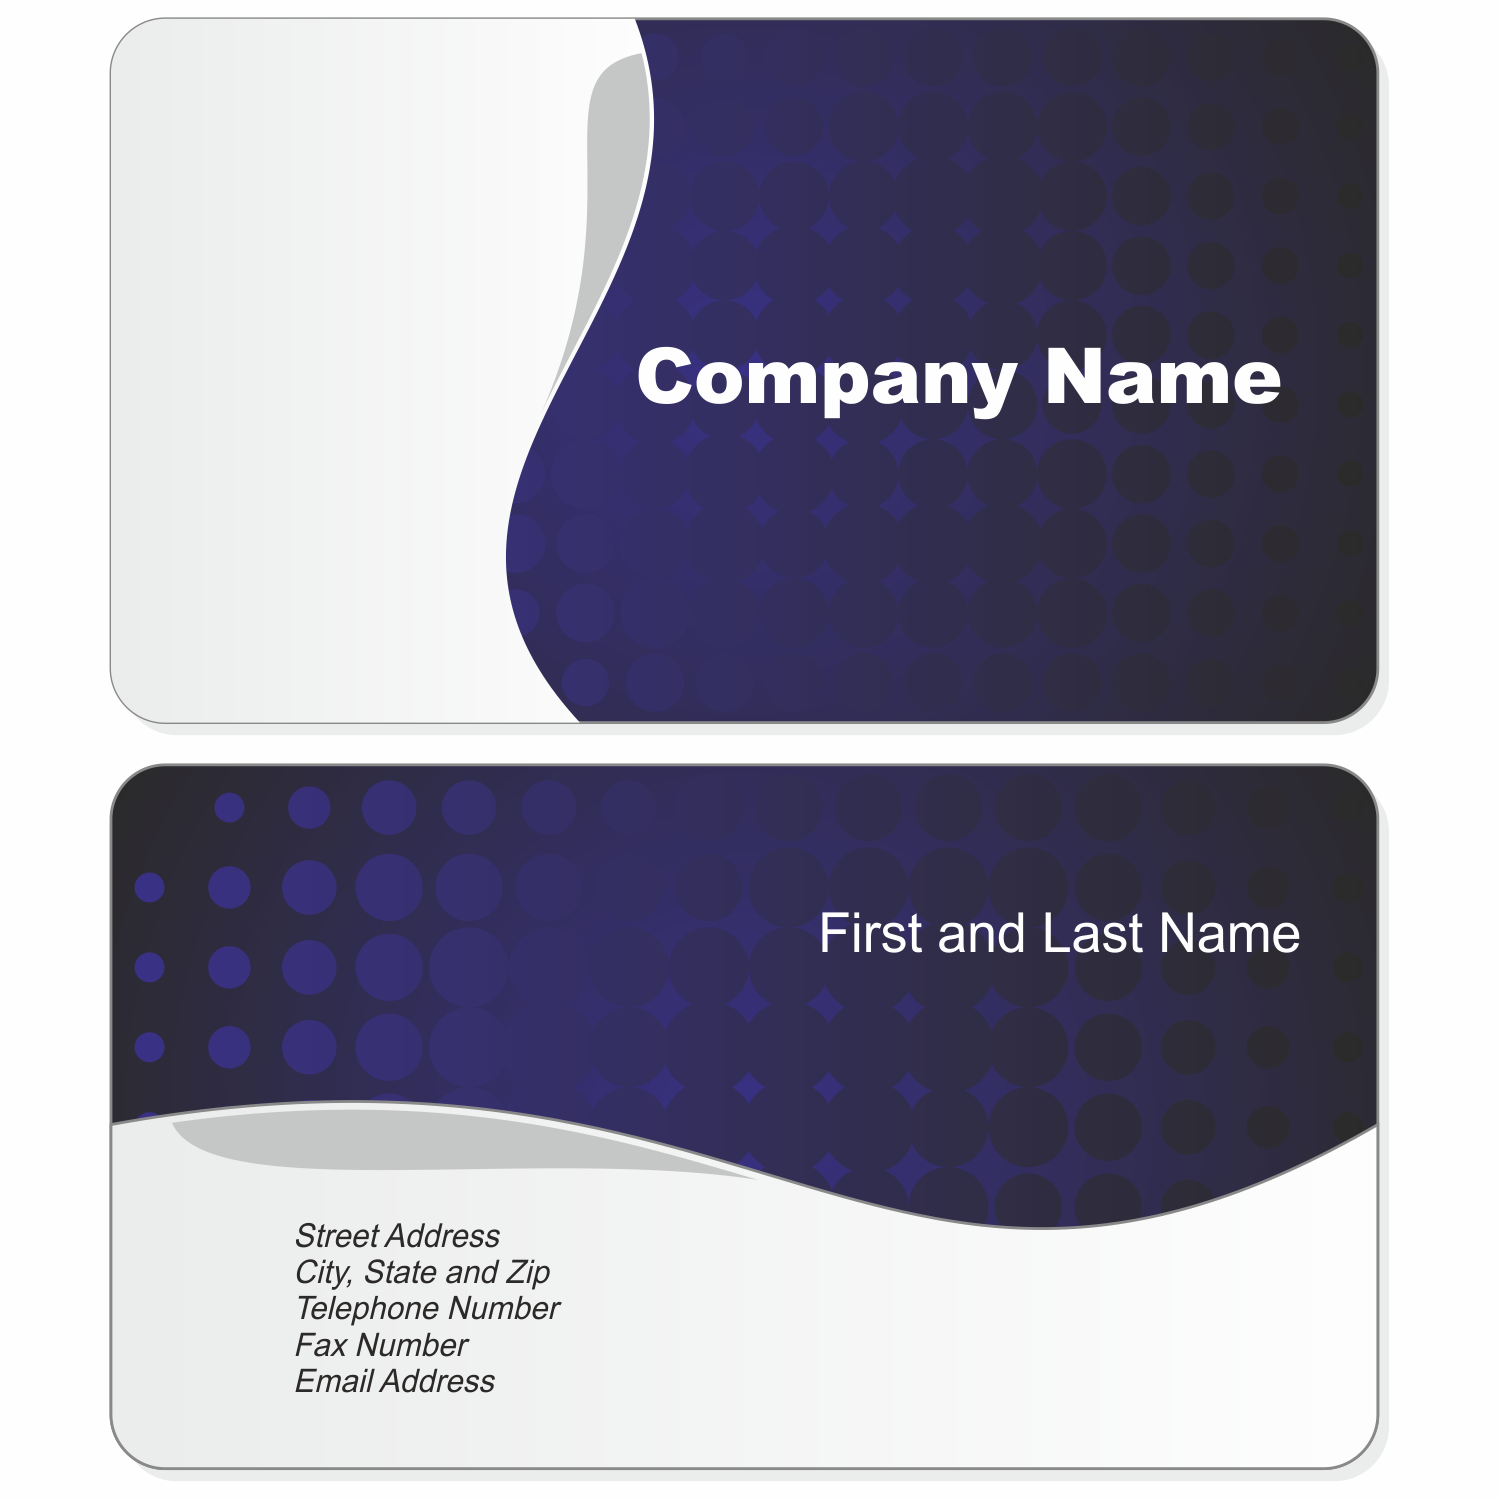 business cards free – quality business card design | free premium, Powerpoint templates